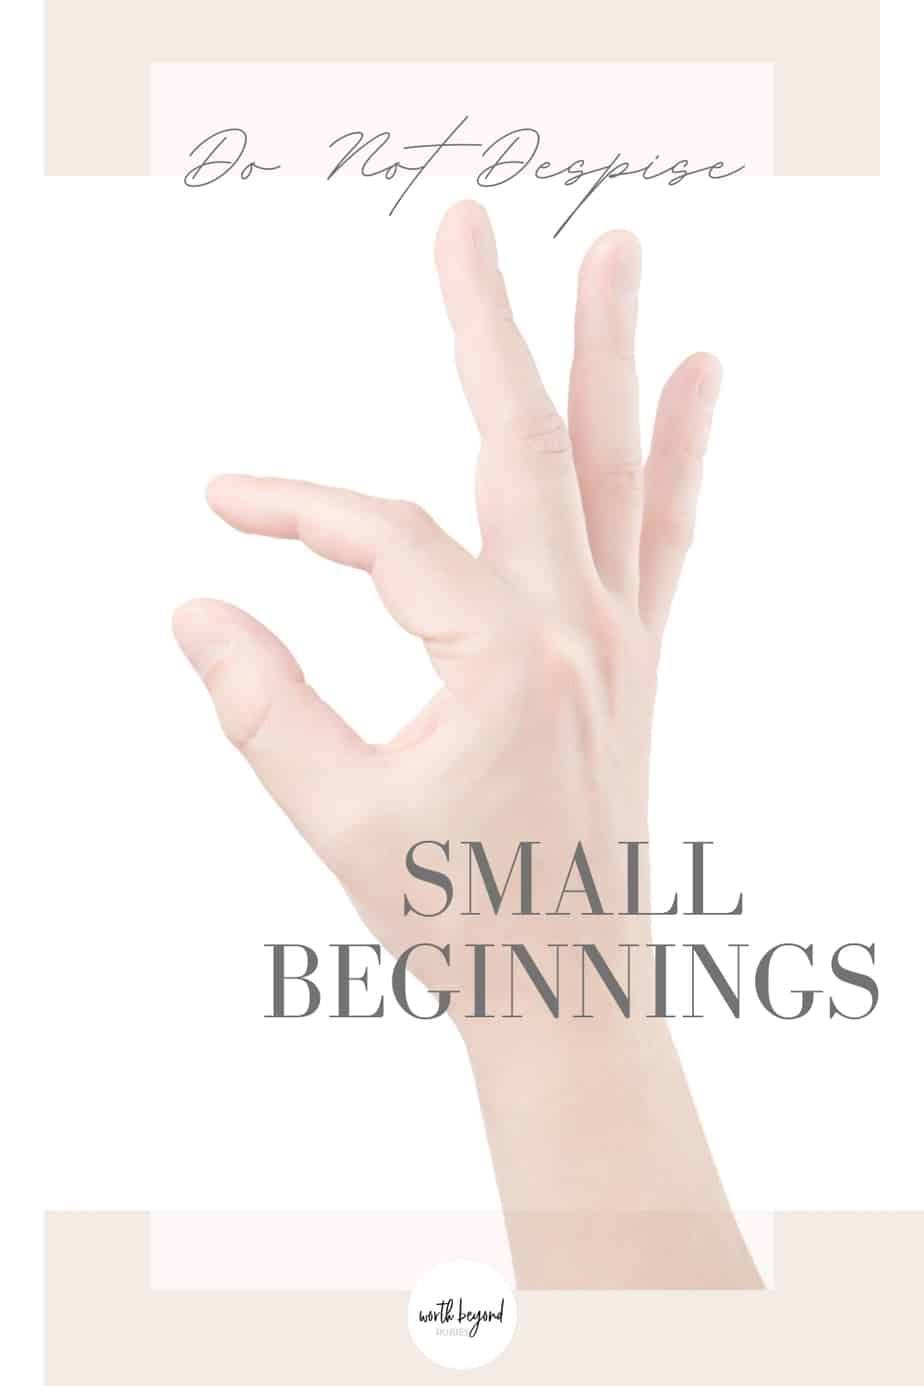 fingers making the symbol for small and text that says Do Not Despise Small Beginnings